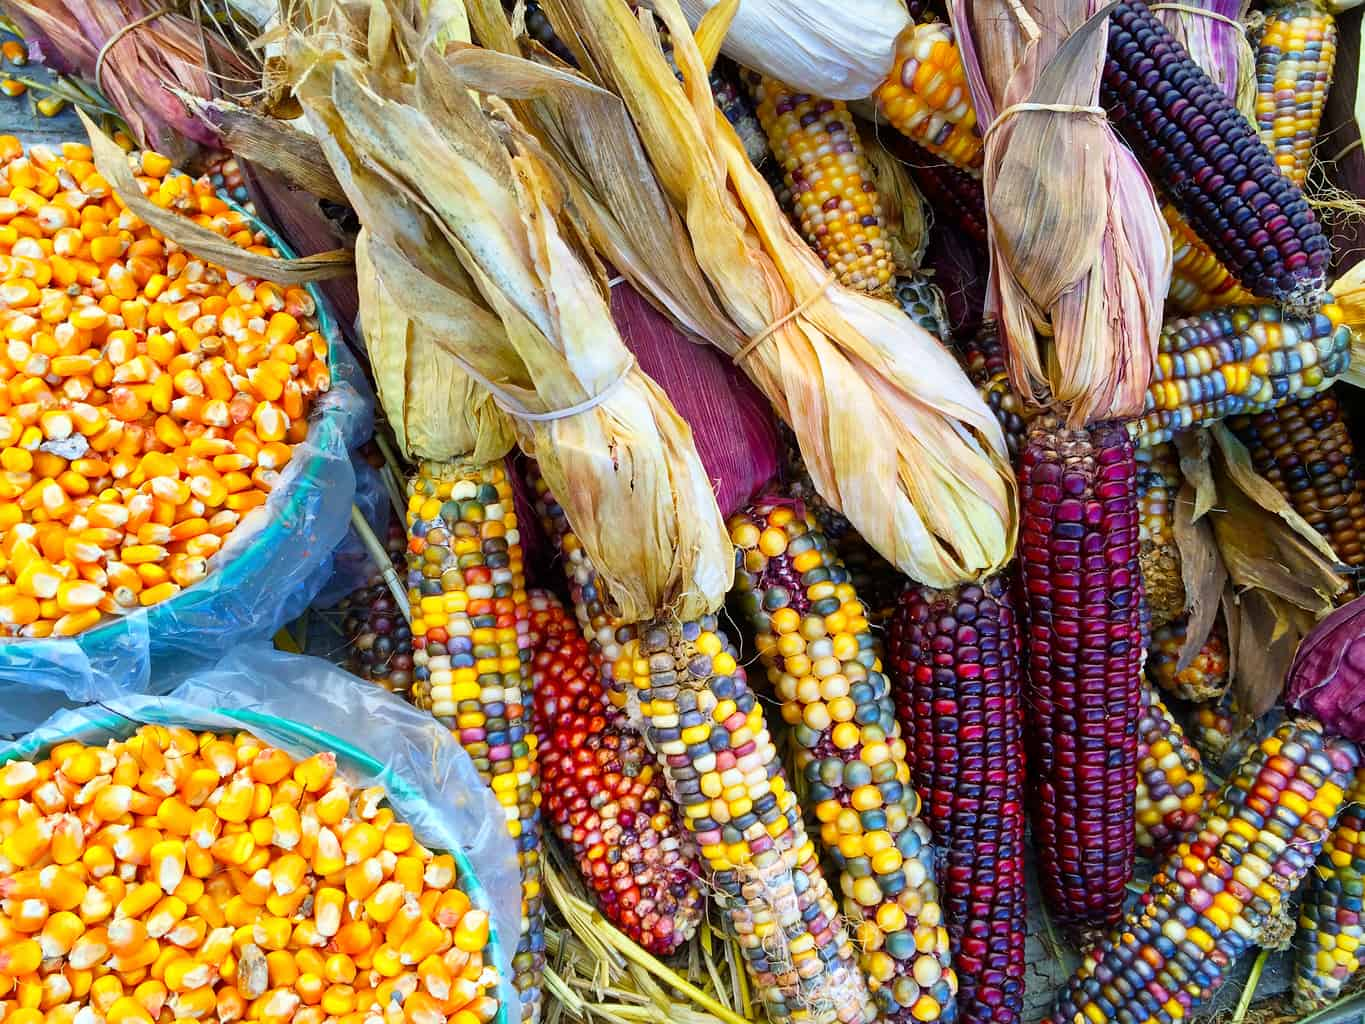 Native American Foods Throughout The United States